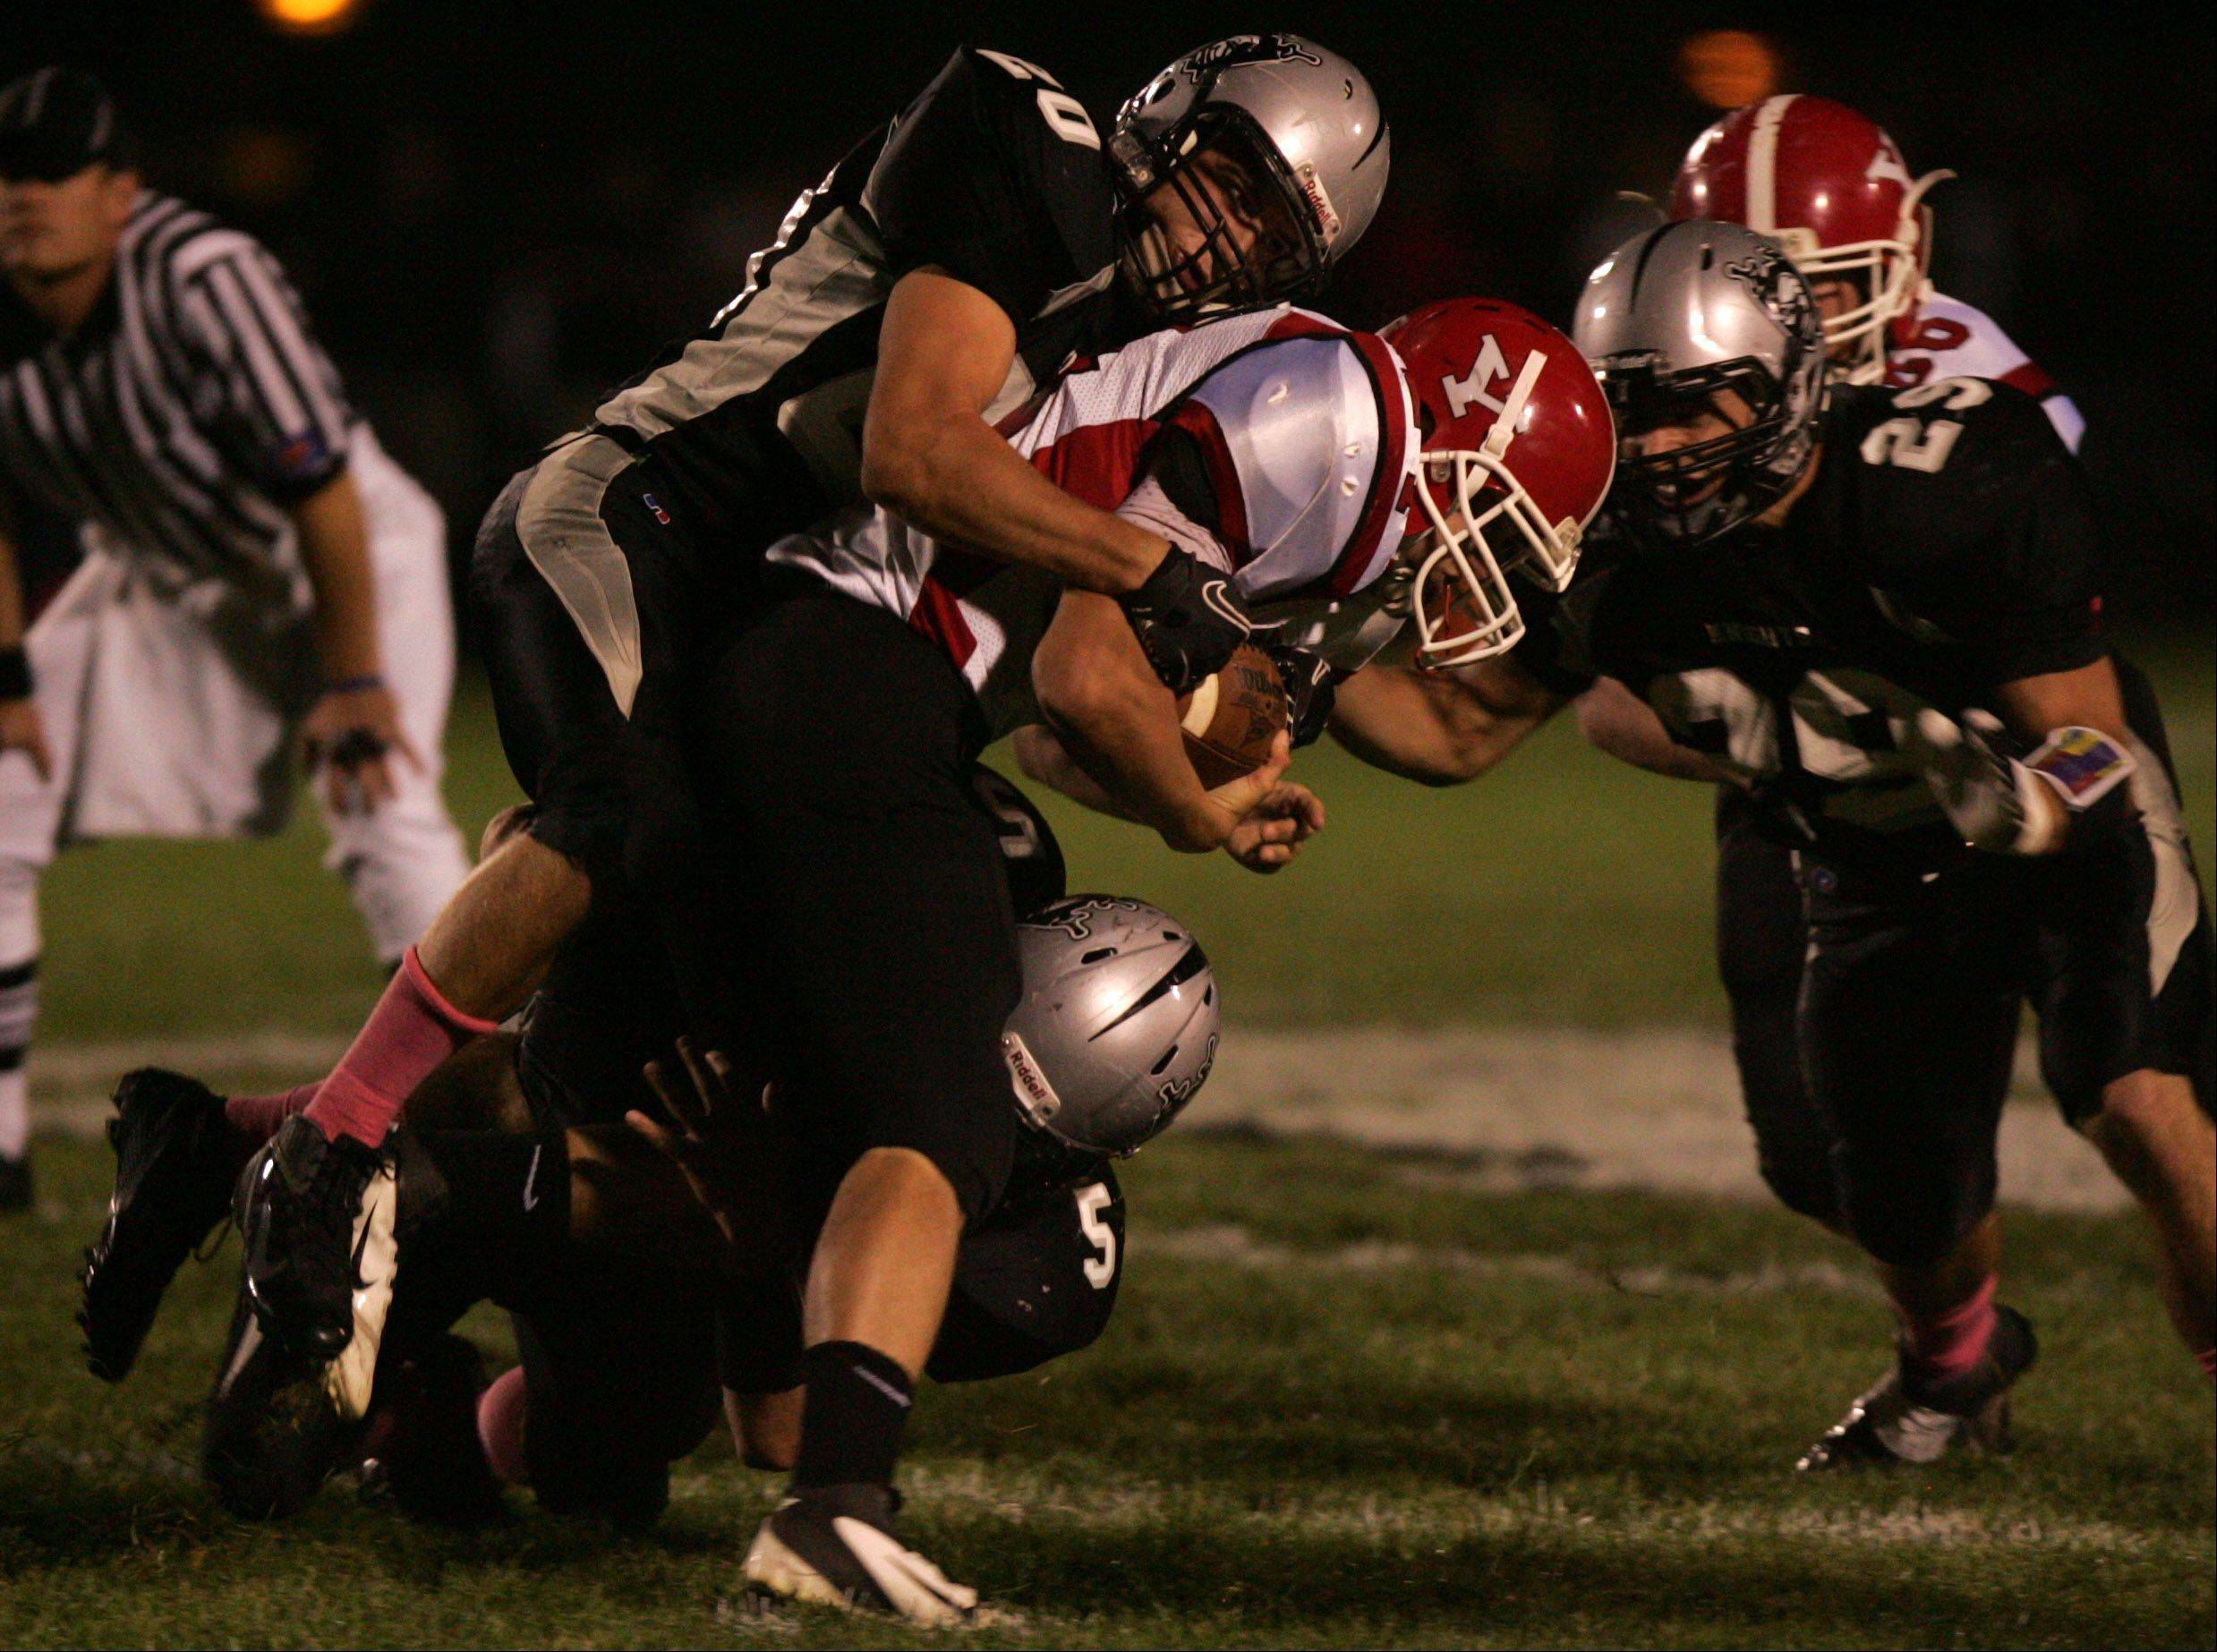 Week 7 - Images from the Yorkville vs. Kaneland football game Friday, October 7, 2011.